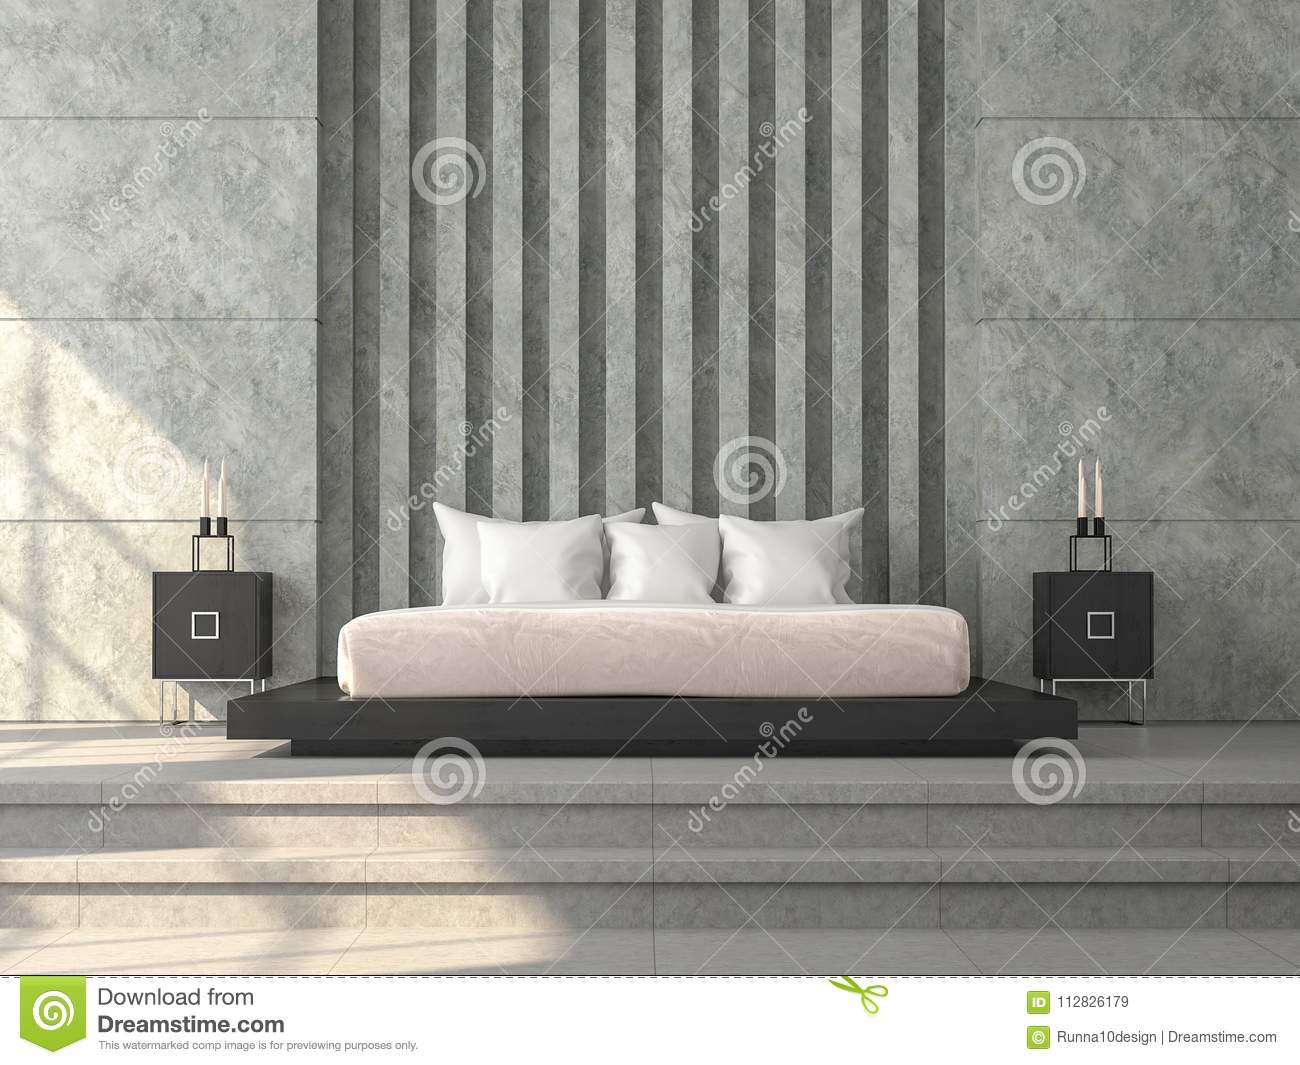 Download Modern Loft Style Bedroom 3d Render,There Concrete Tile Floor,polished  Concrete Wall